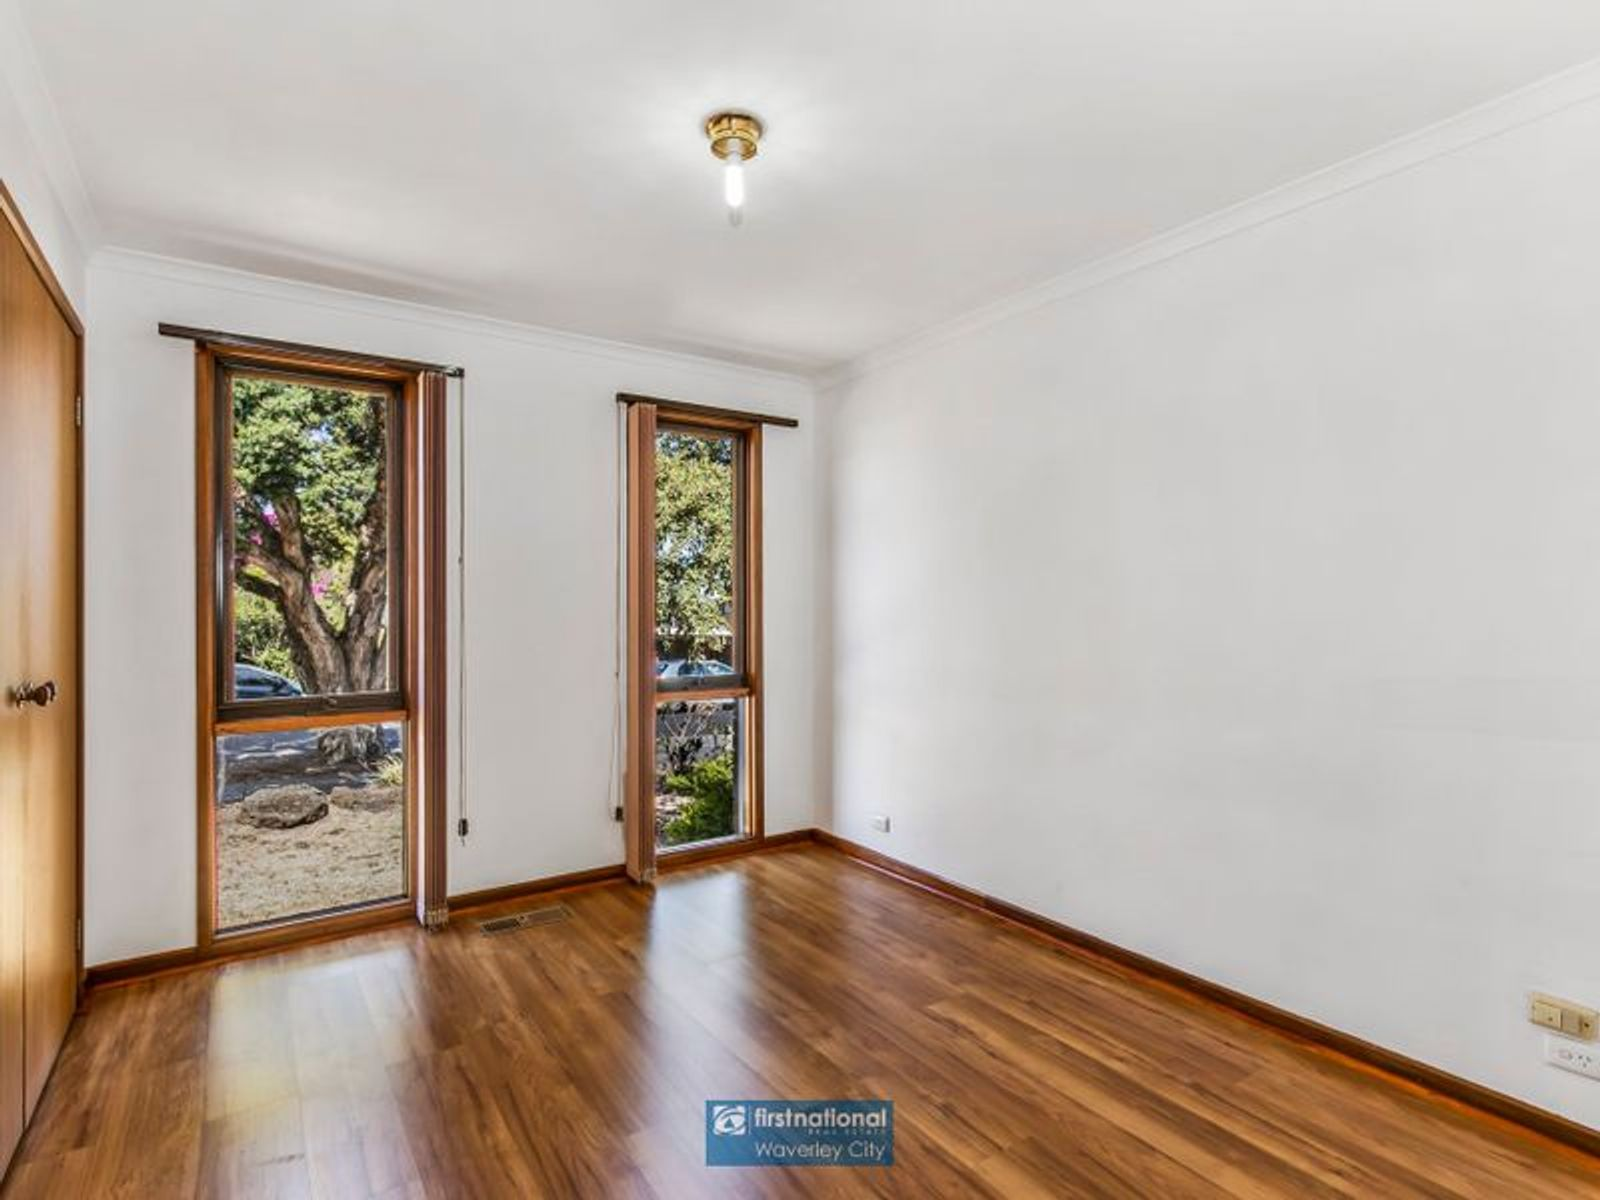 1/9 Graham Street, Glen Waverley, VIC 3150